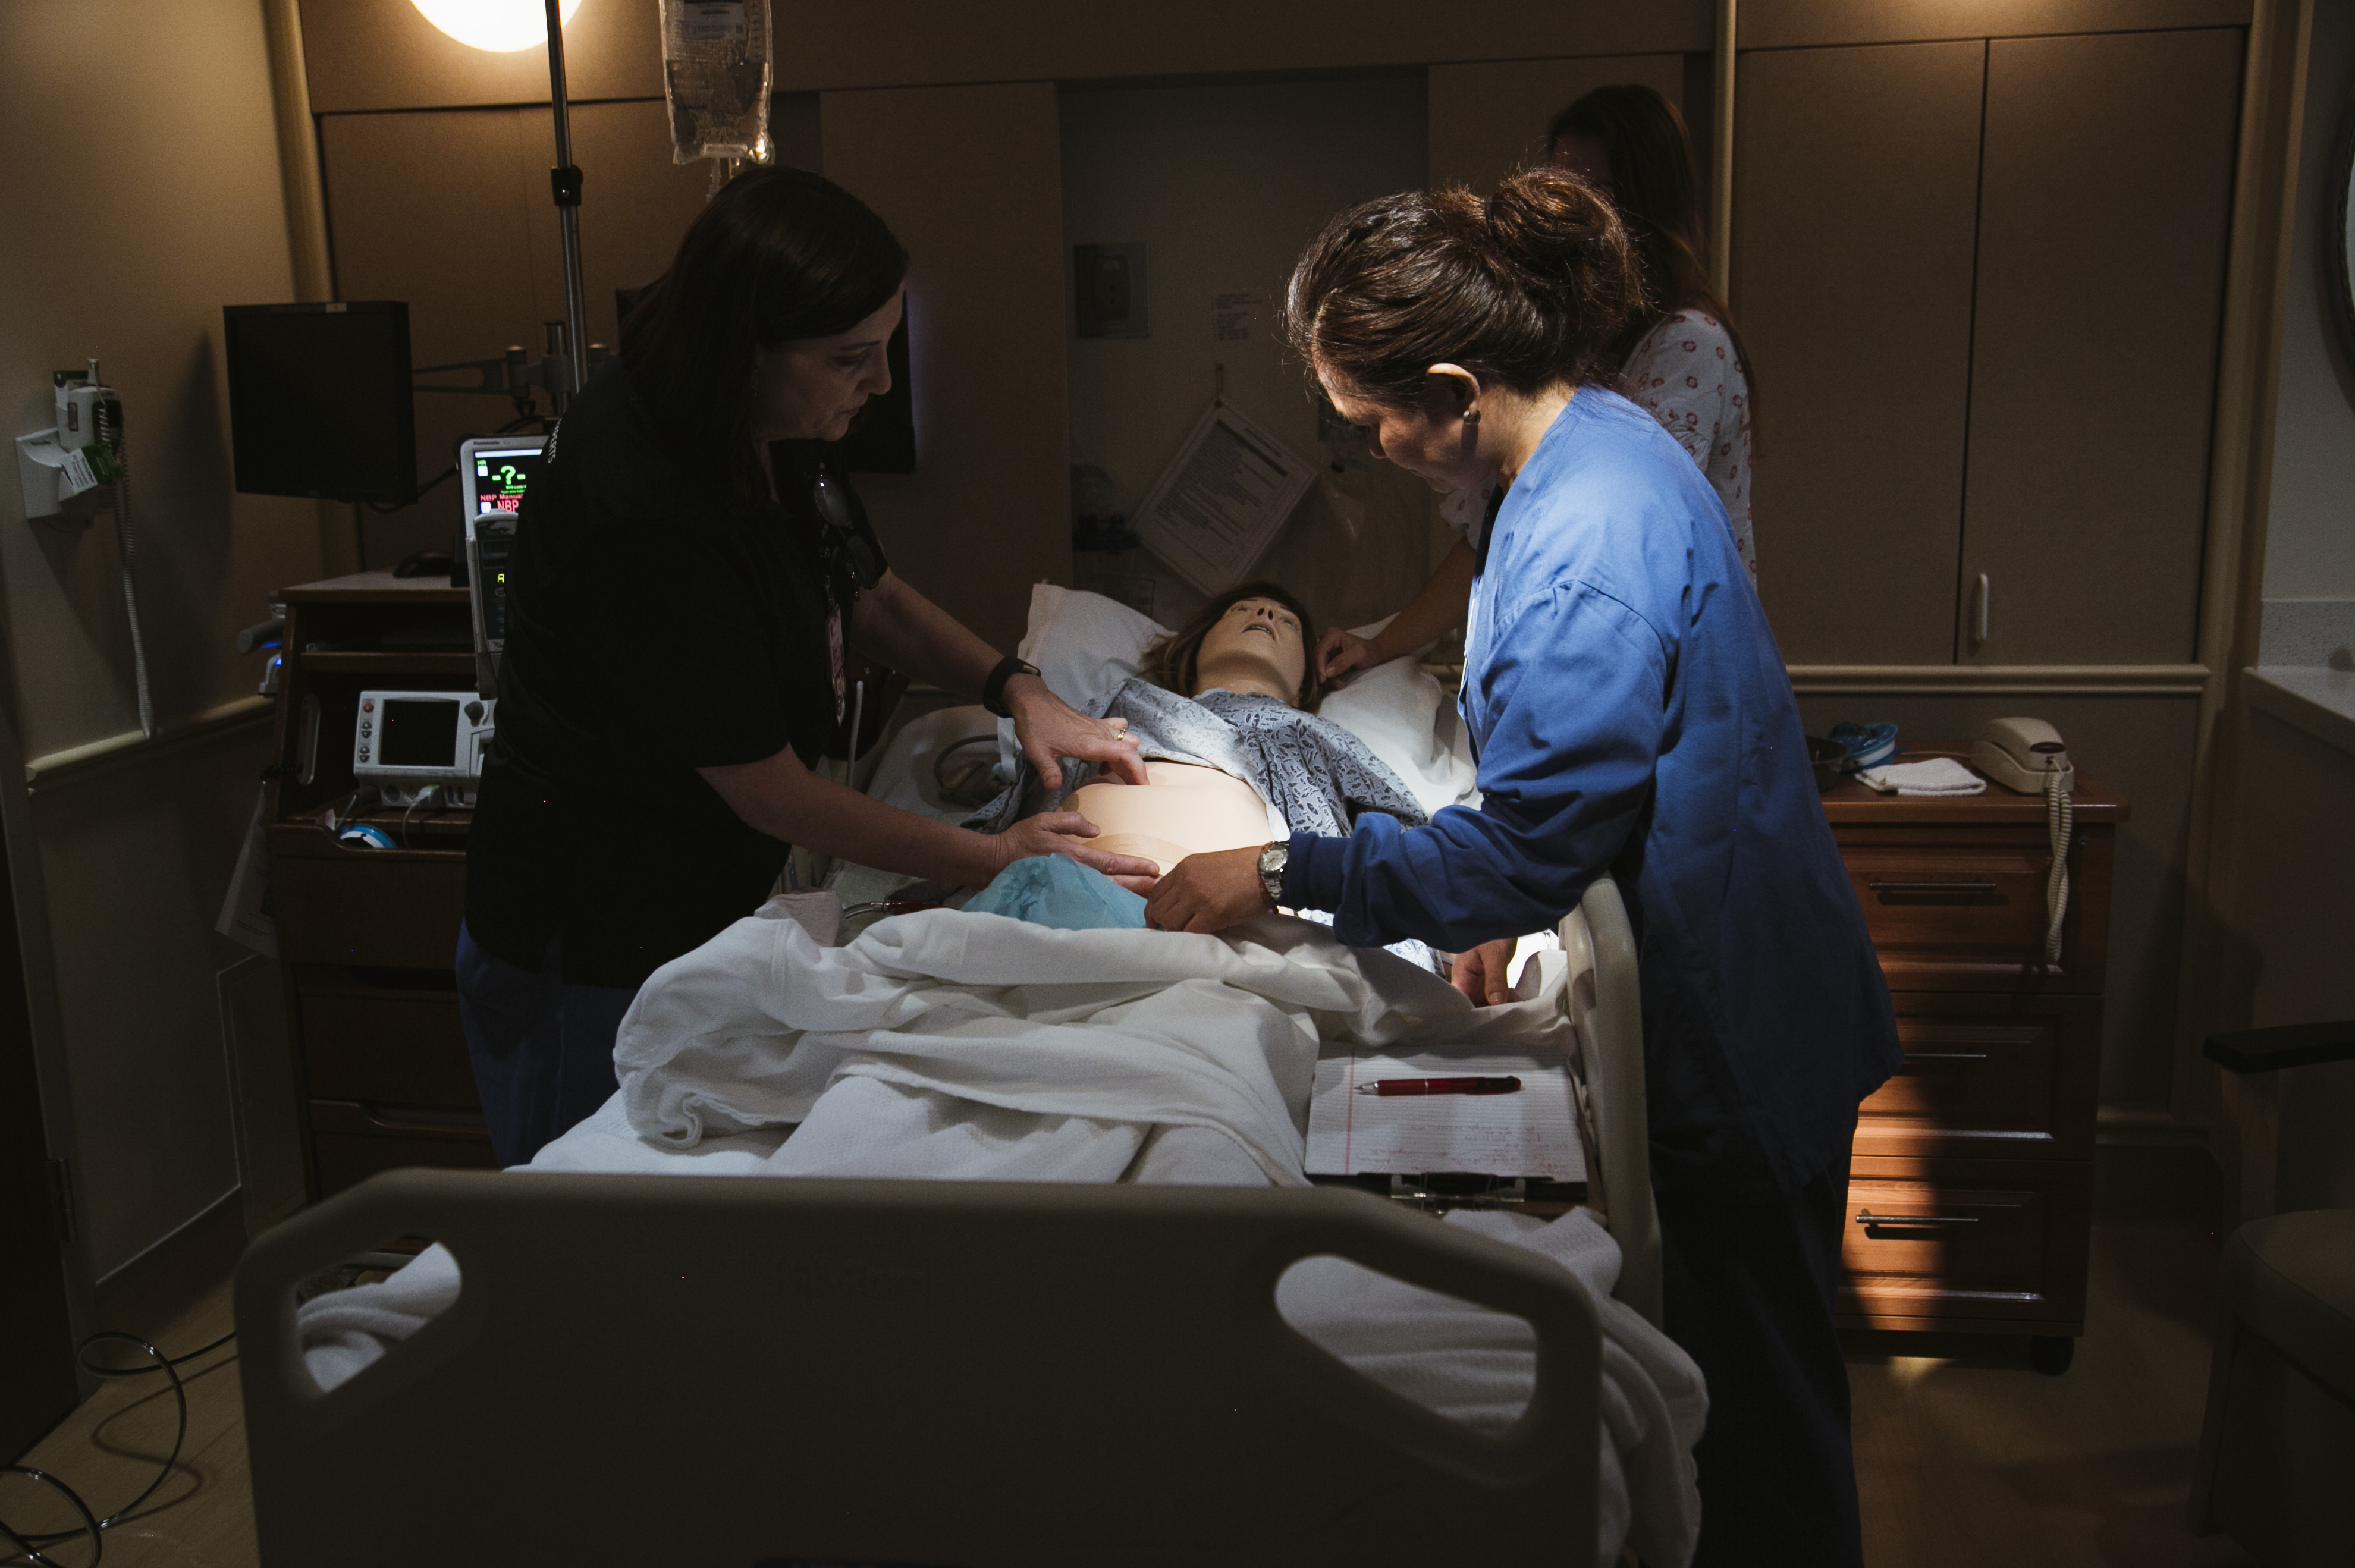 Using a mannequin to simulate dangerous scenarios, a team at Pomona Valley Hospital Medical Center learns standard treatments for obstetric emergencies like hemorrhage.